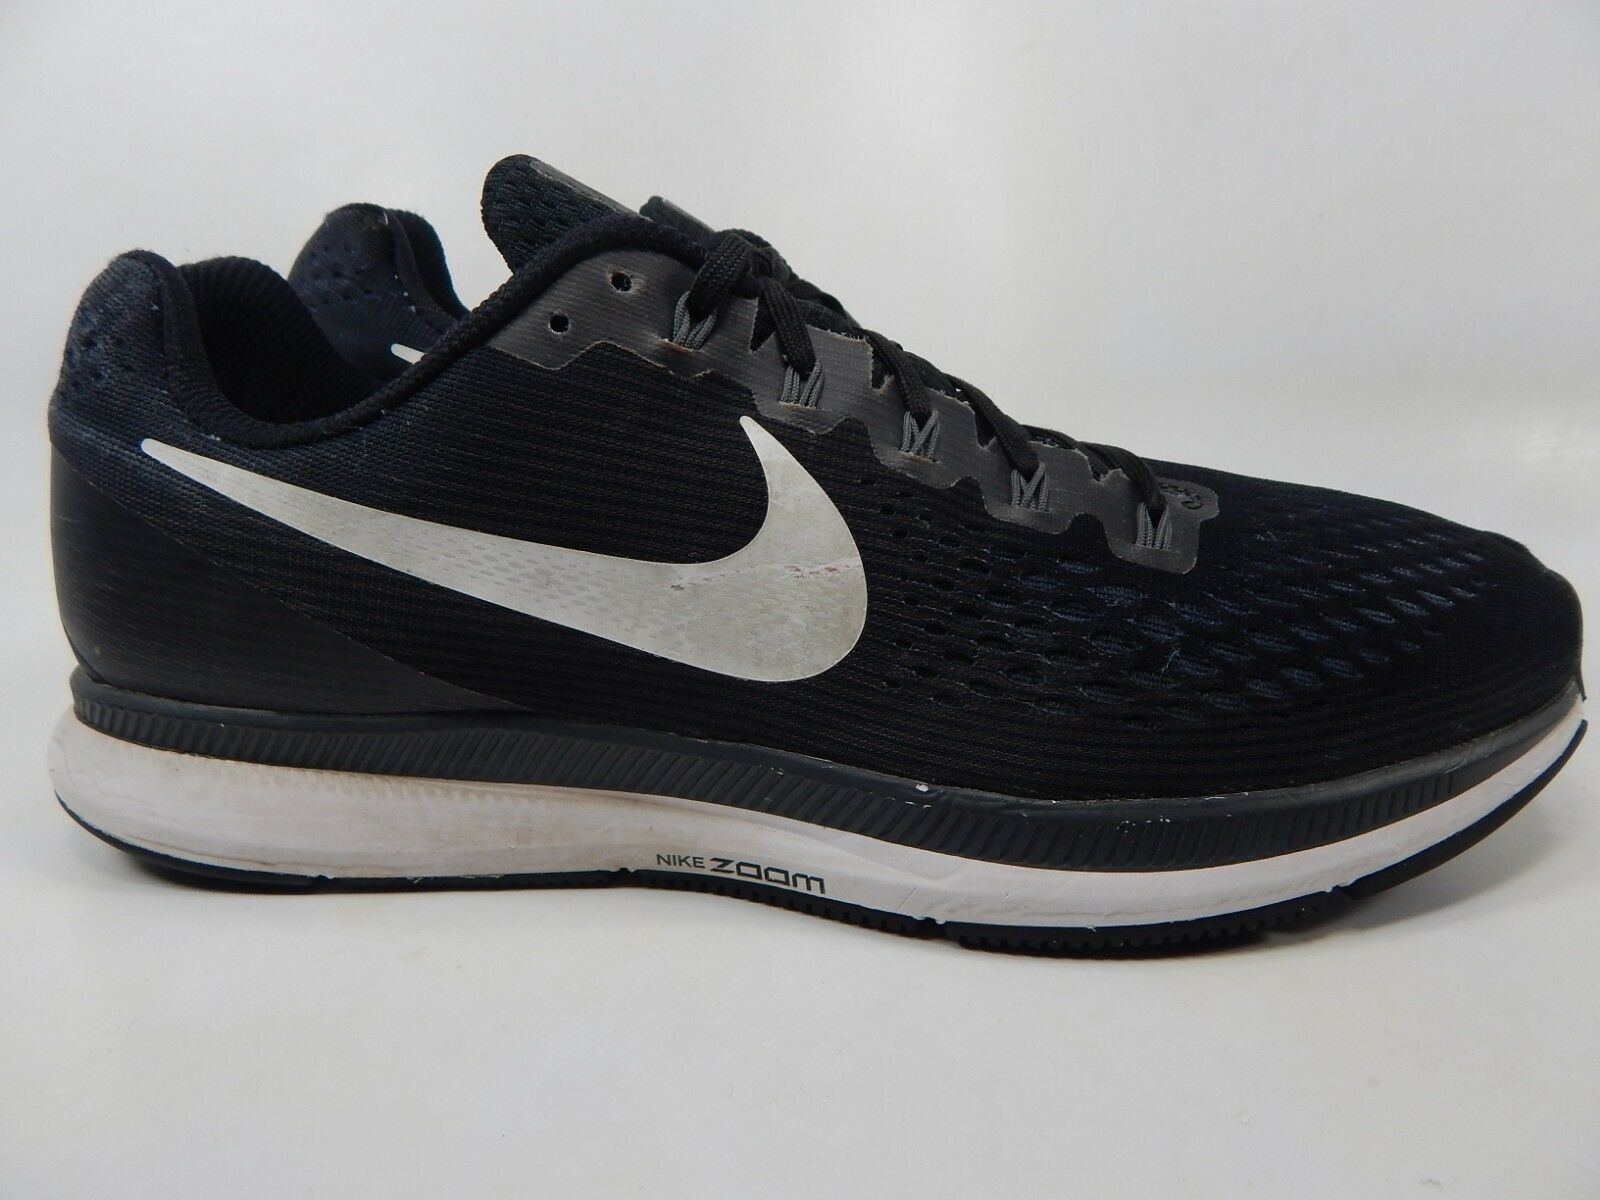 Nike Air Zoom Pegasus 34 Size Size Size 12 M (D) Mens Running shoes Black 880555-001 ac50a5